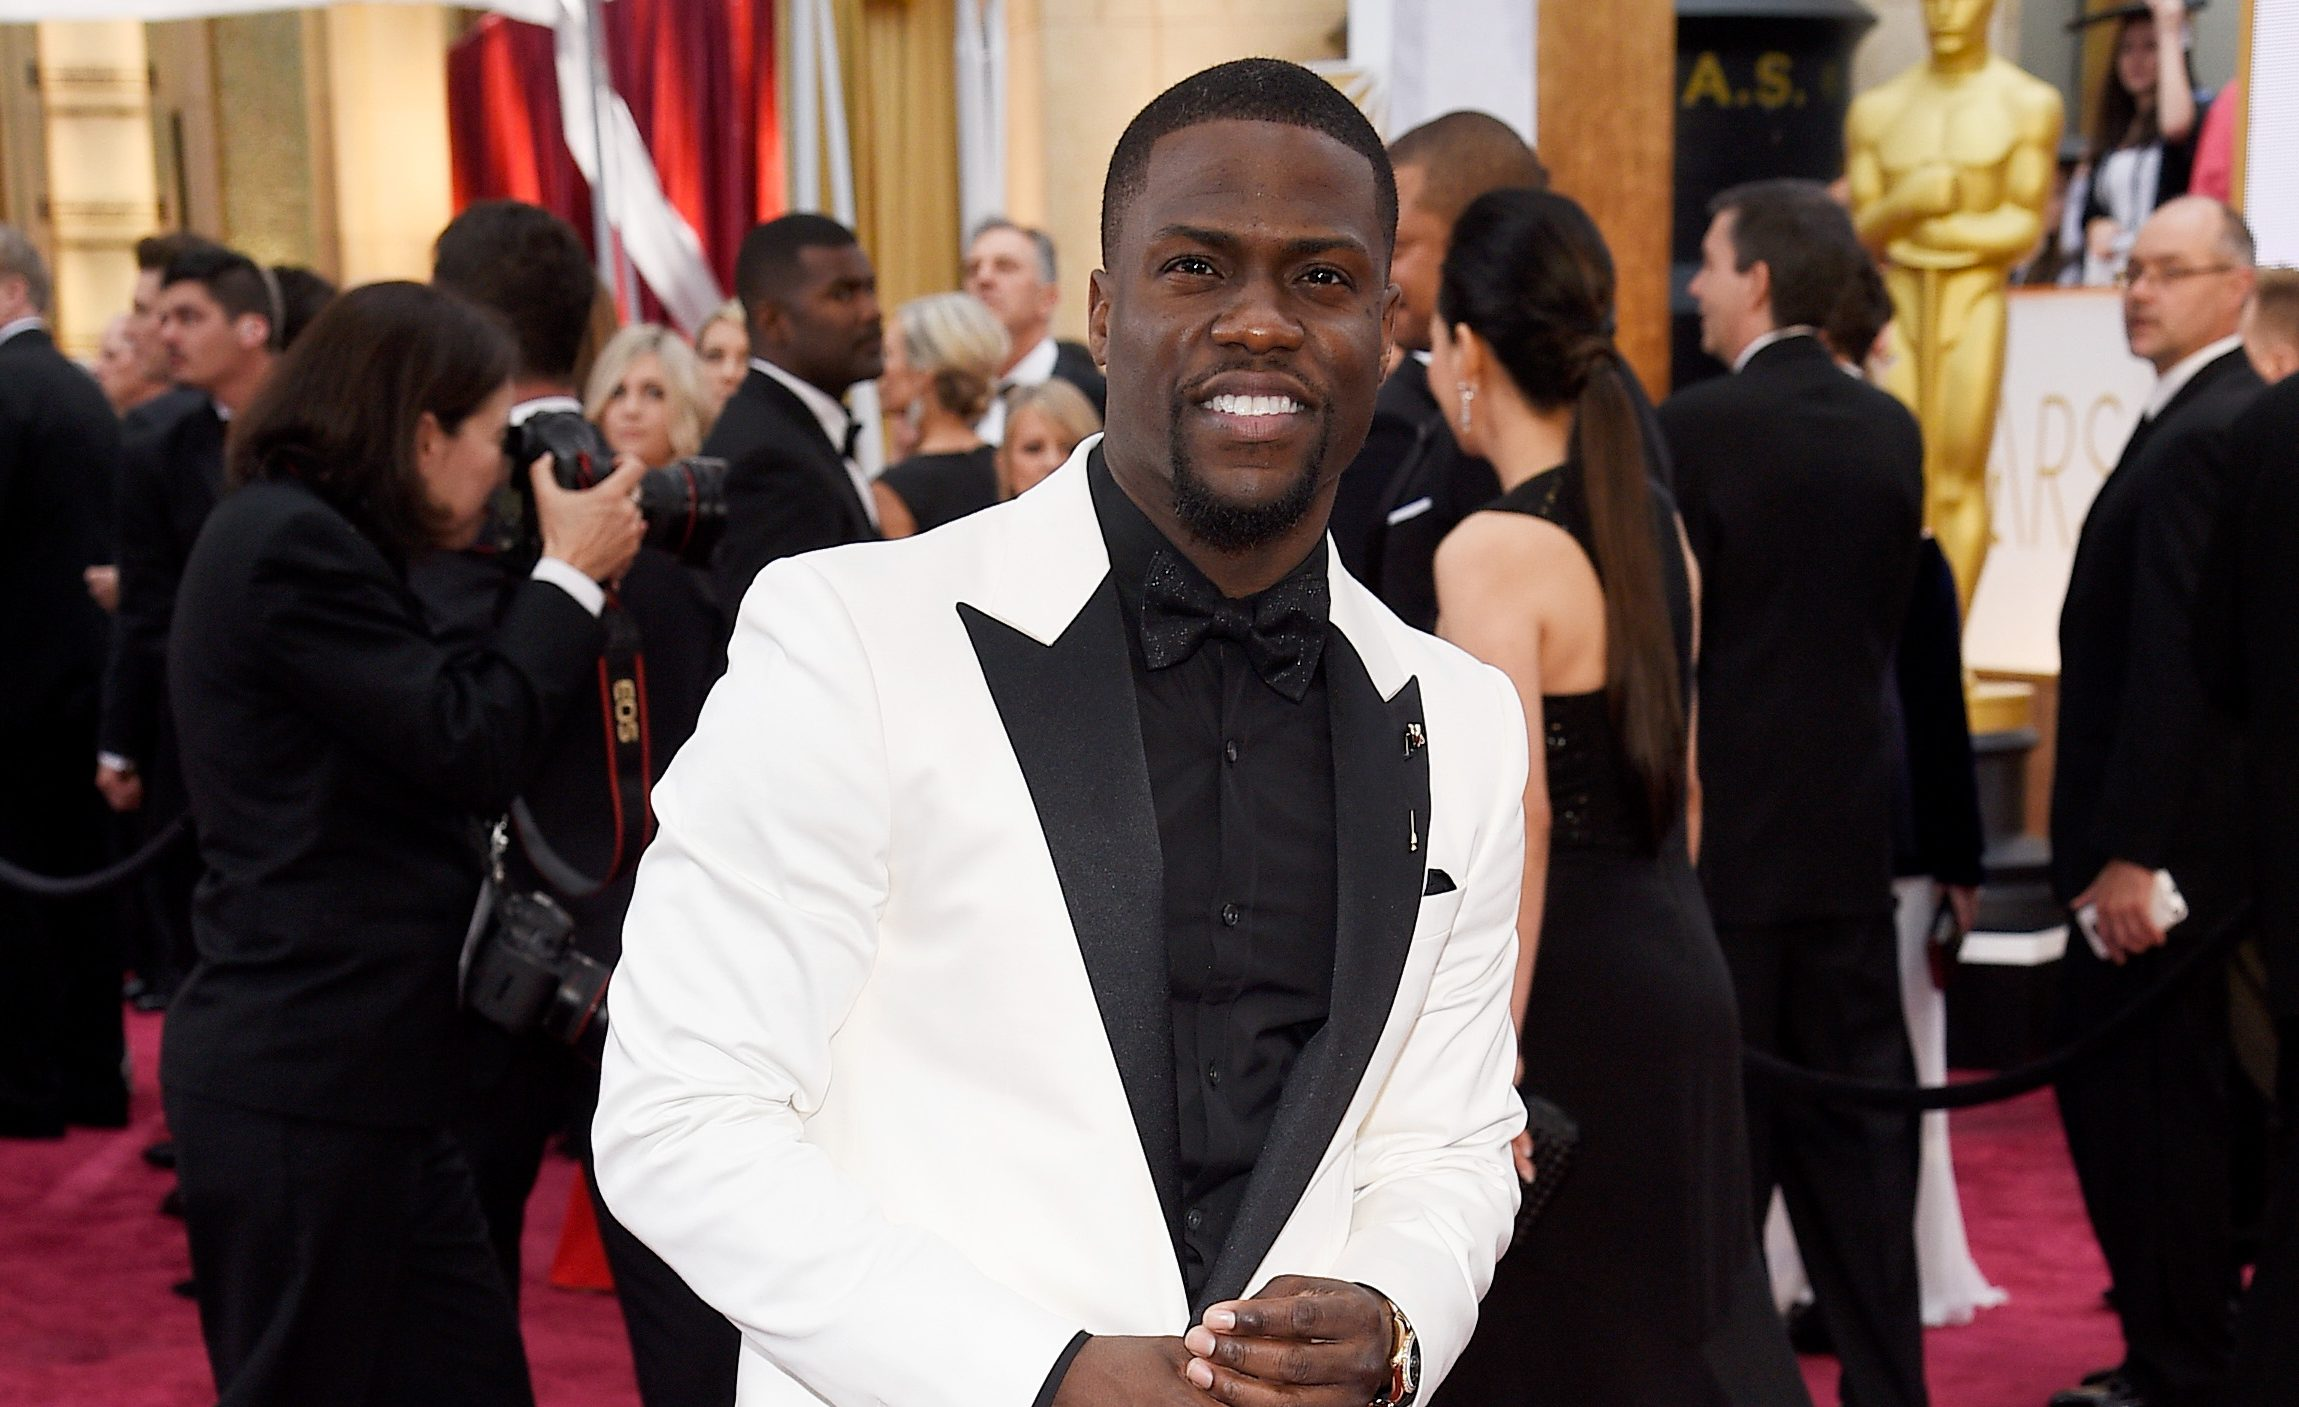 Why did Kevin Hart step down from hosting Oscars 2019 and what did he say in the 'homophobic' tweets?